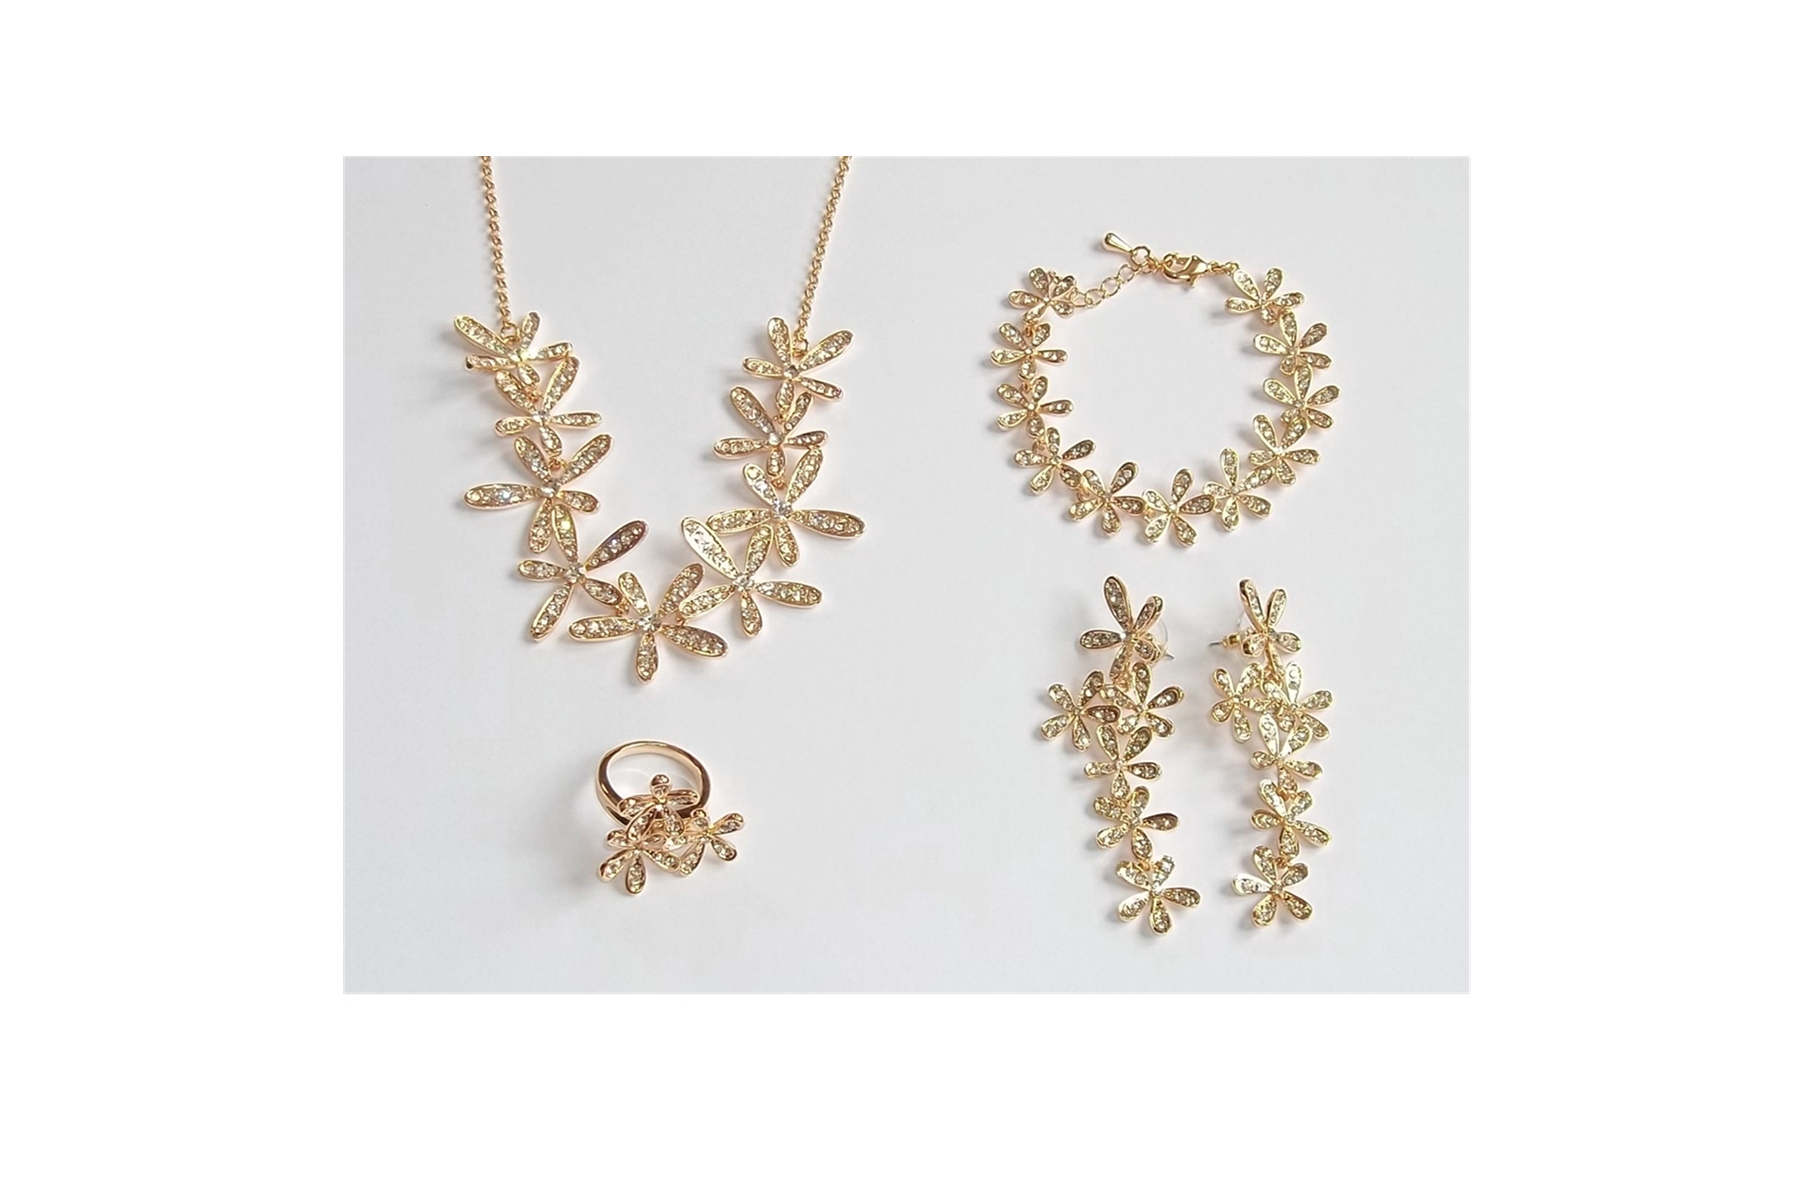 4 Piece Silver Plated or Gold Plated Austrian Crystal Flower Jewellery Set